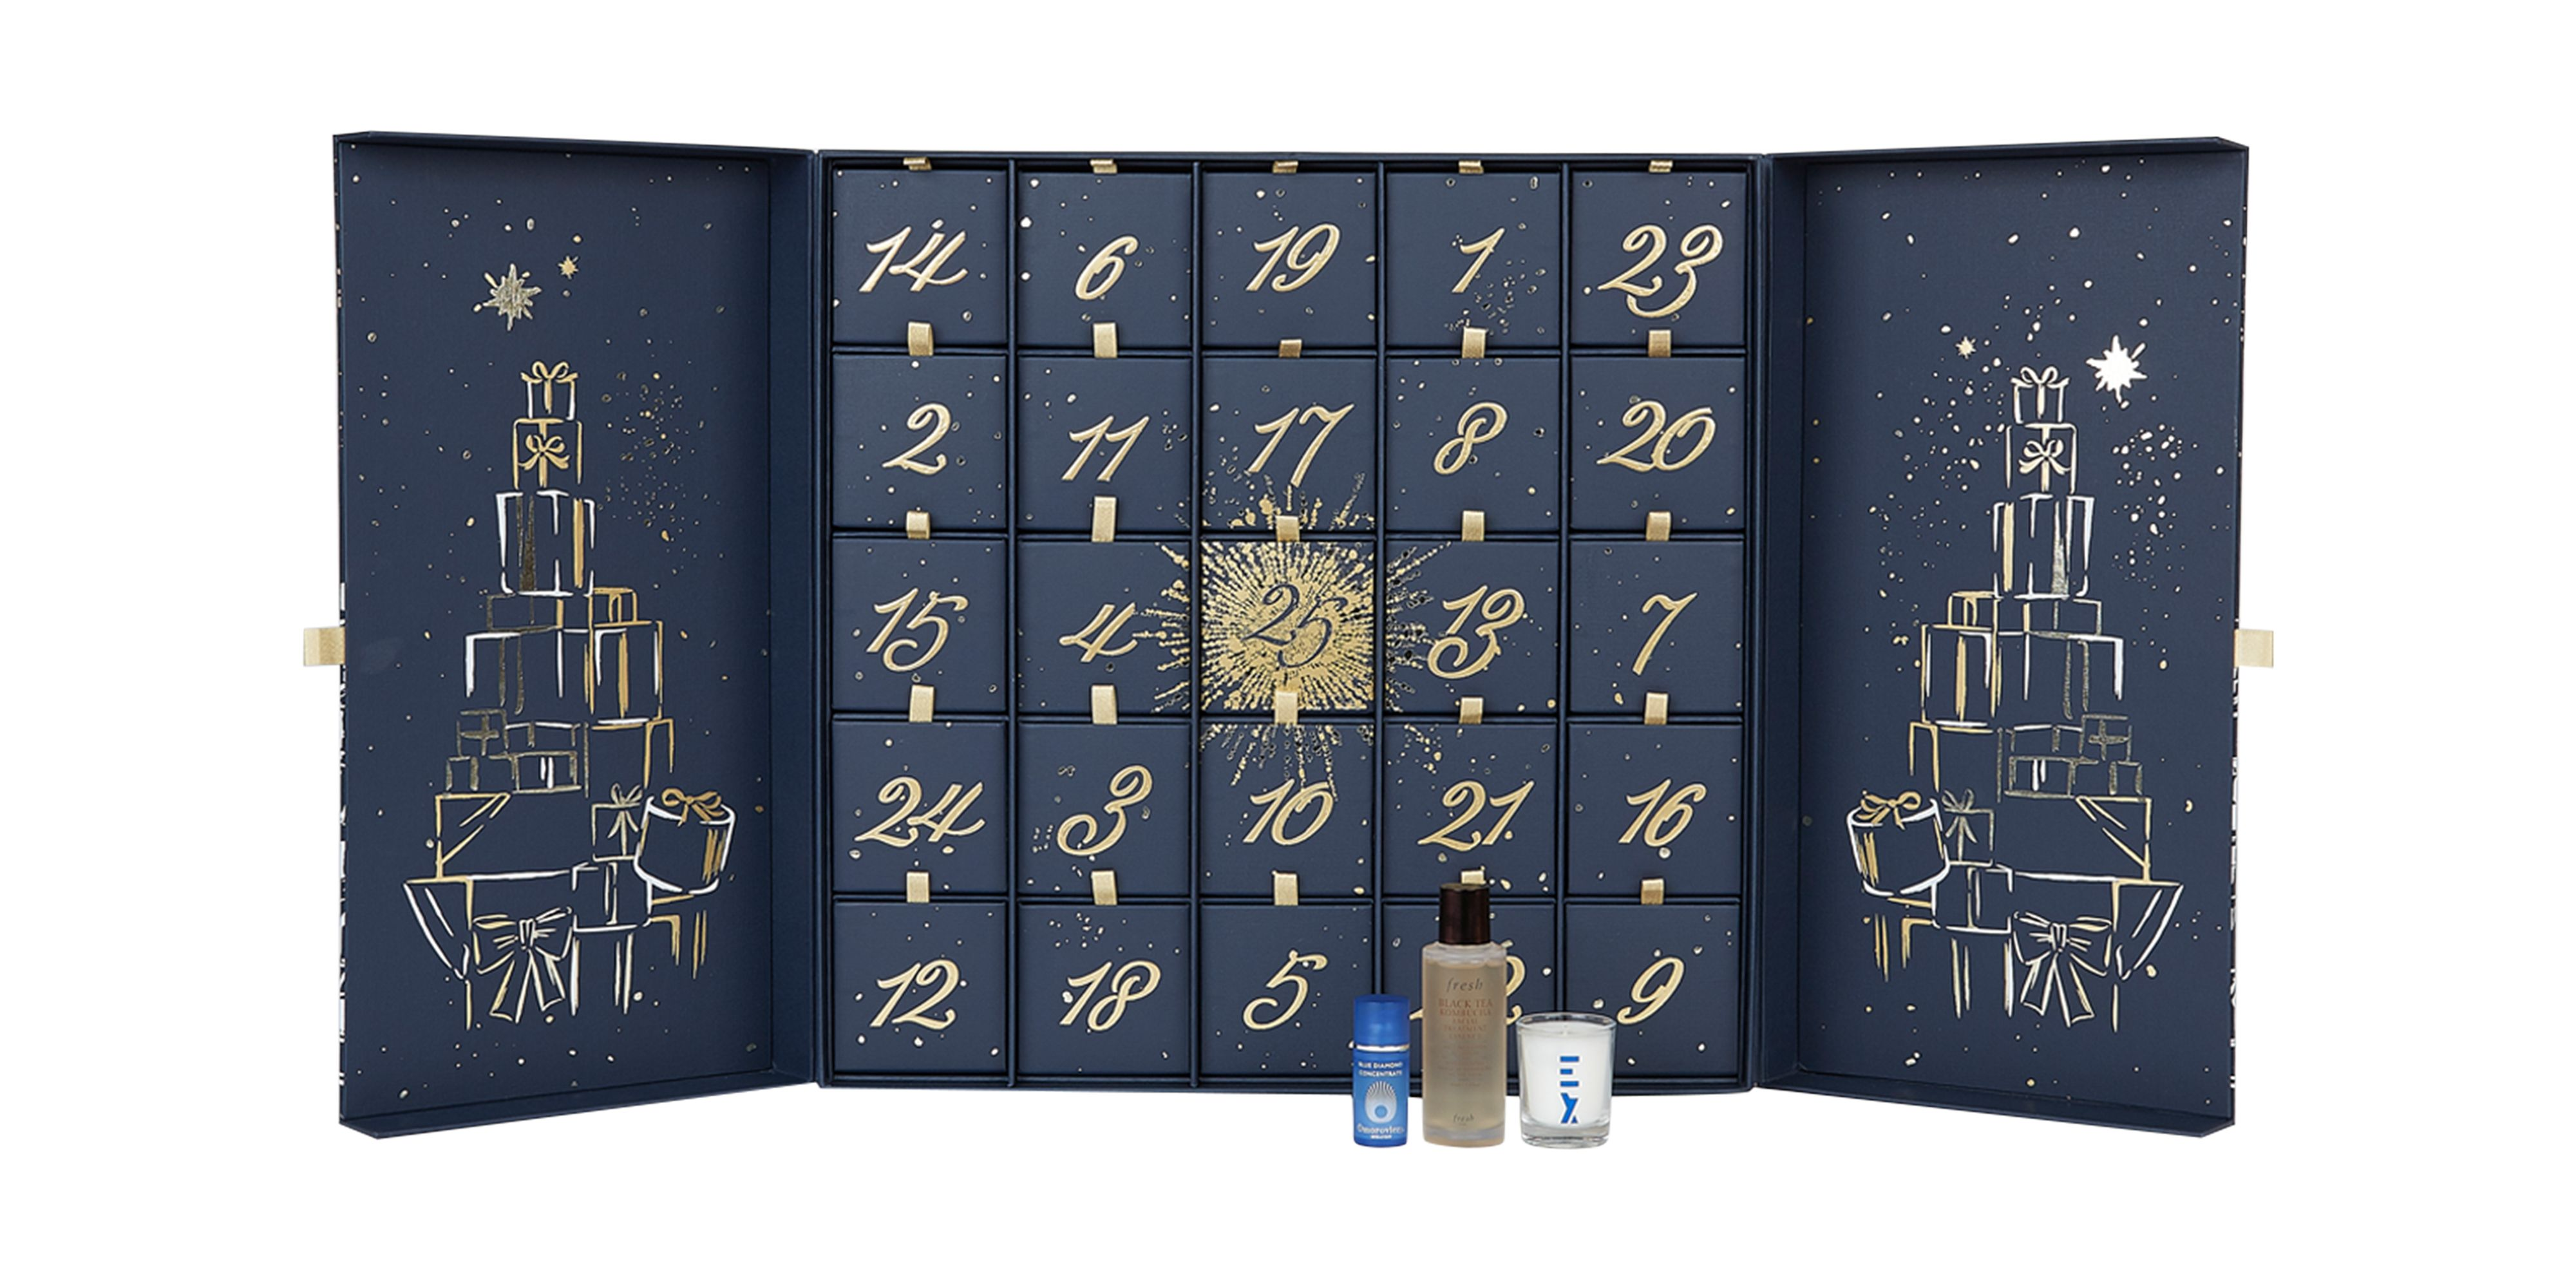 Toys R Us Weihnachtskalender.First Look Harrods Sell Out Beauty Advent Calendar 2019